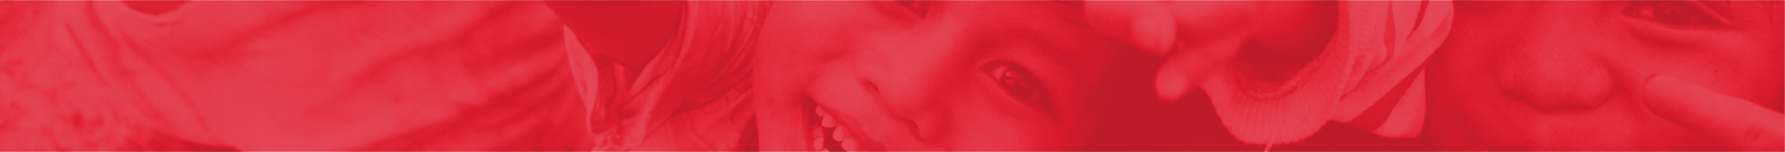 Project Page Banner-21.png